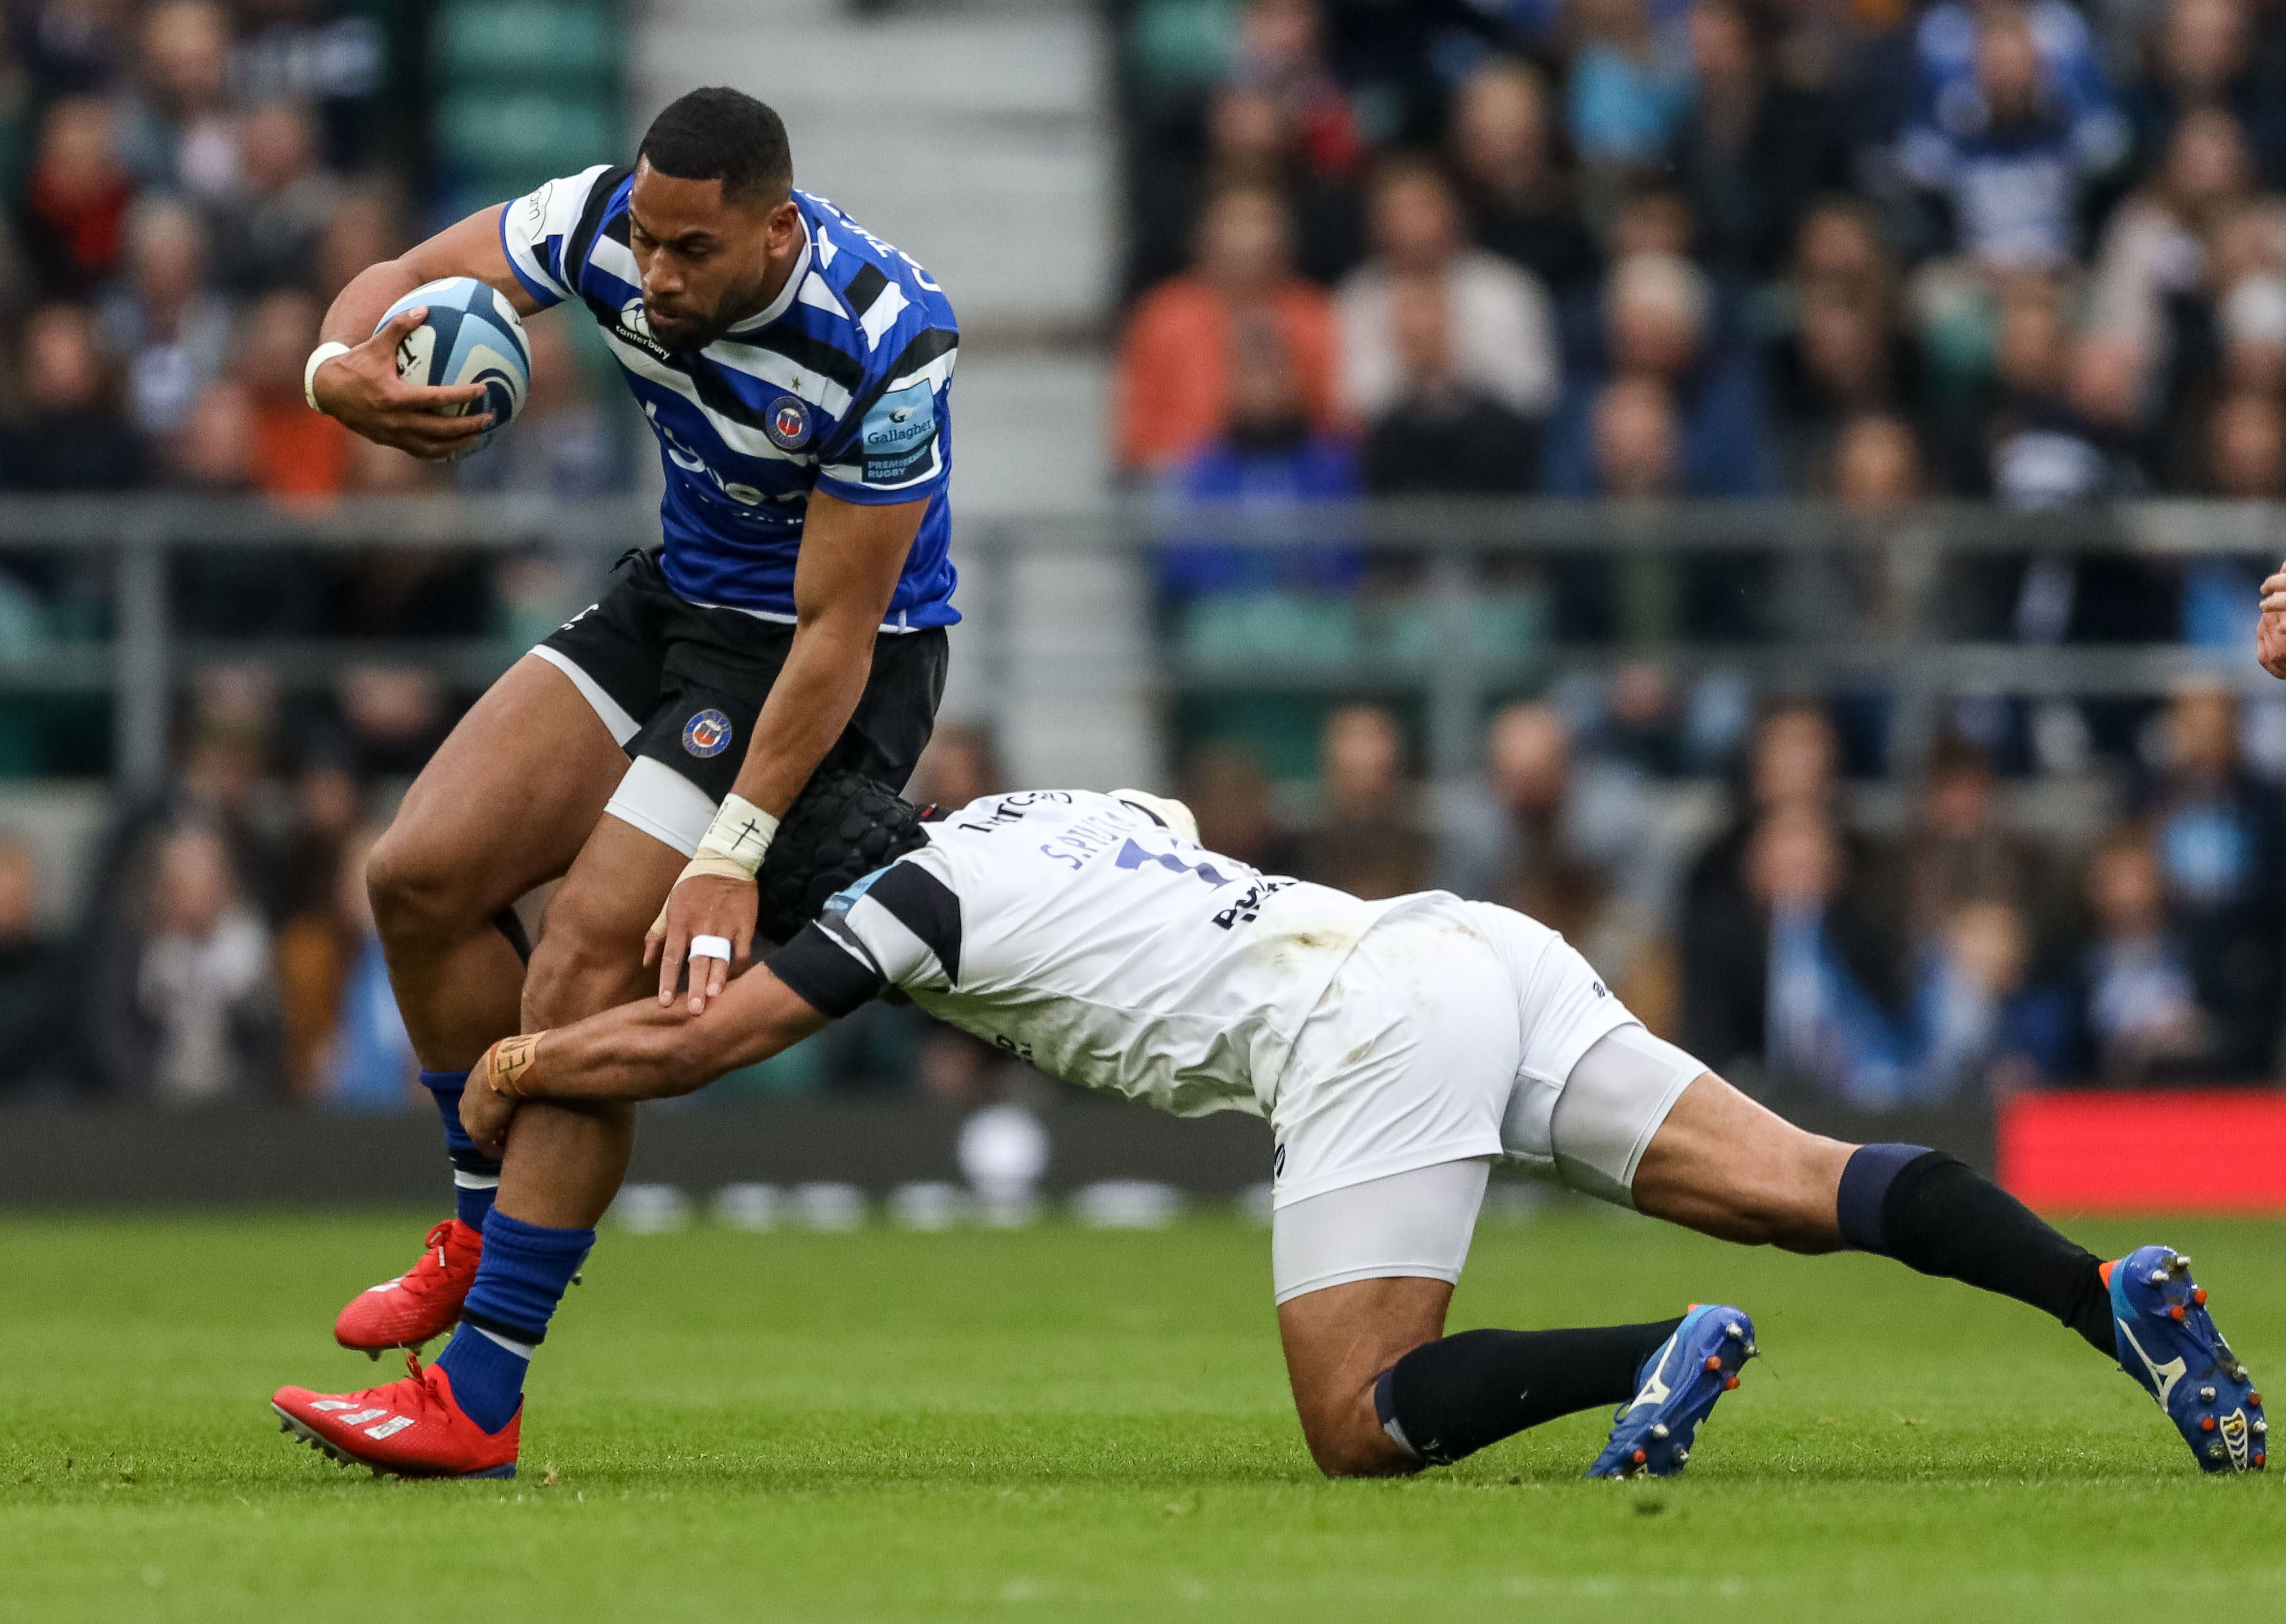 England youngster Joe Cokanasiga suffered a shoulder injury while playing for Bath